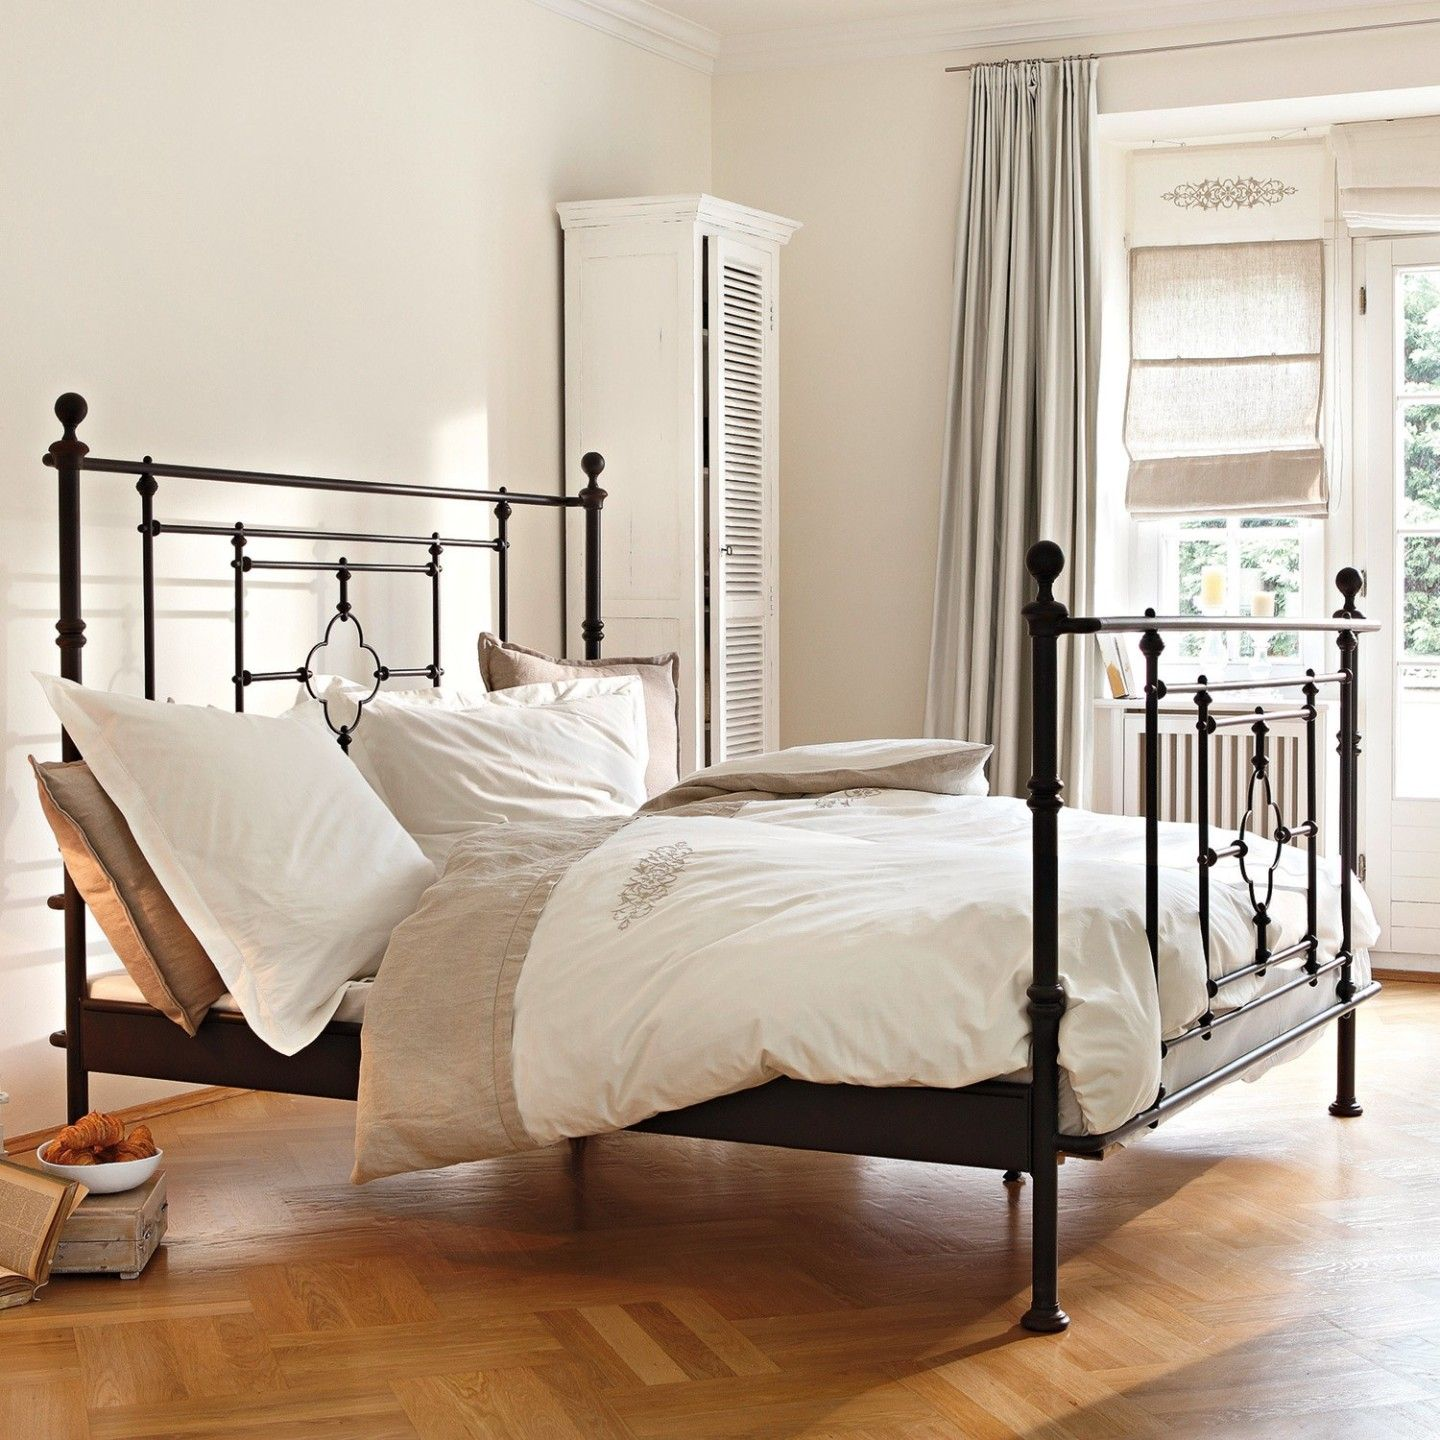 elegantes schlafzimmer mit metallbett. Black Bedroom Furniture Sets. Home Design Ideas